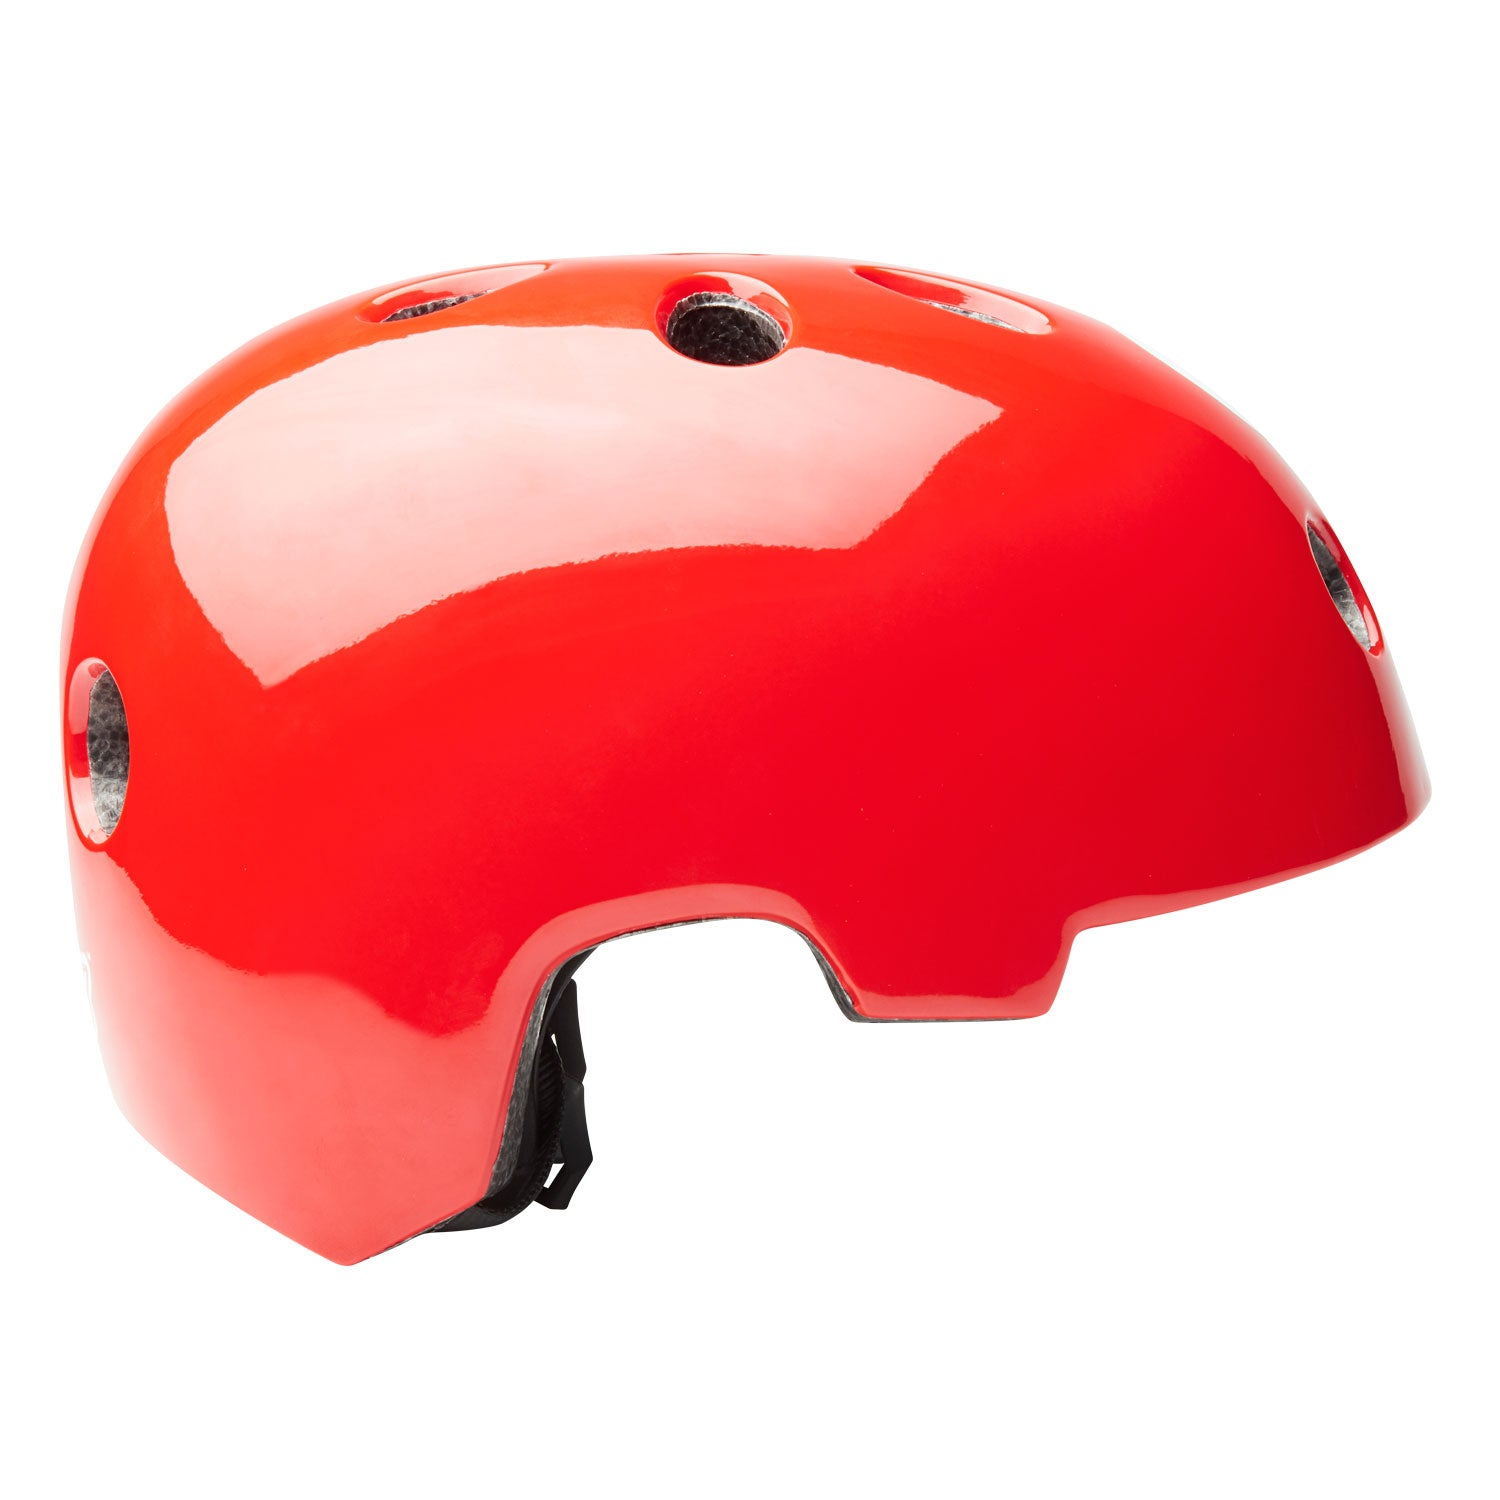 Red GOTRAX multi-sport helmet side image